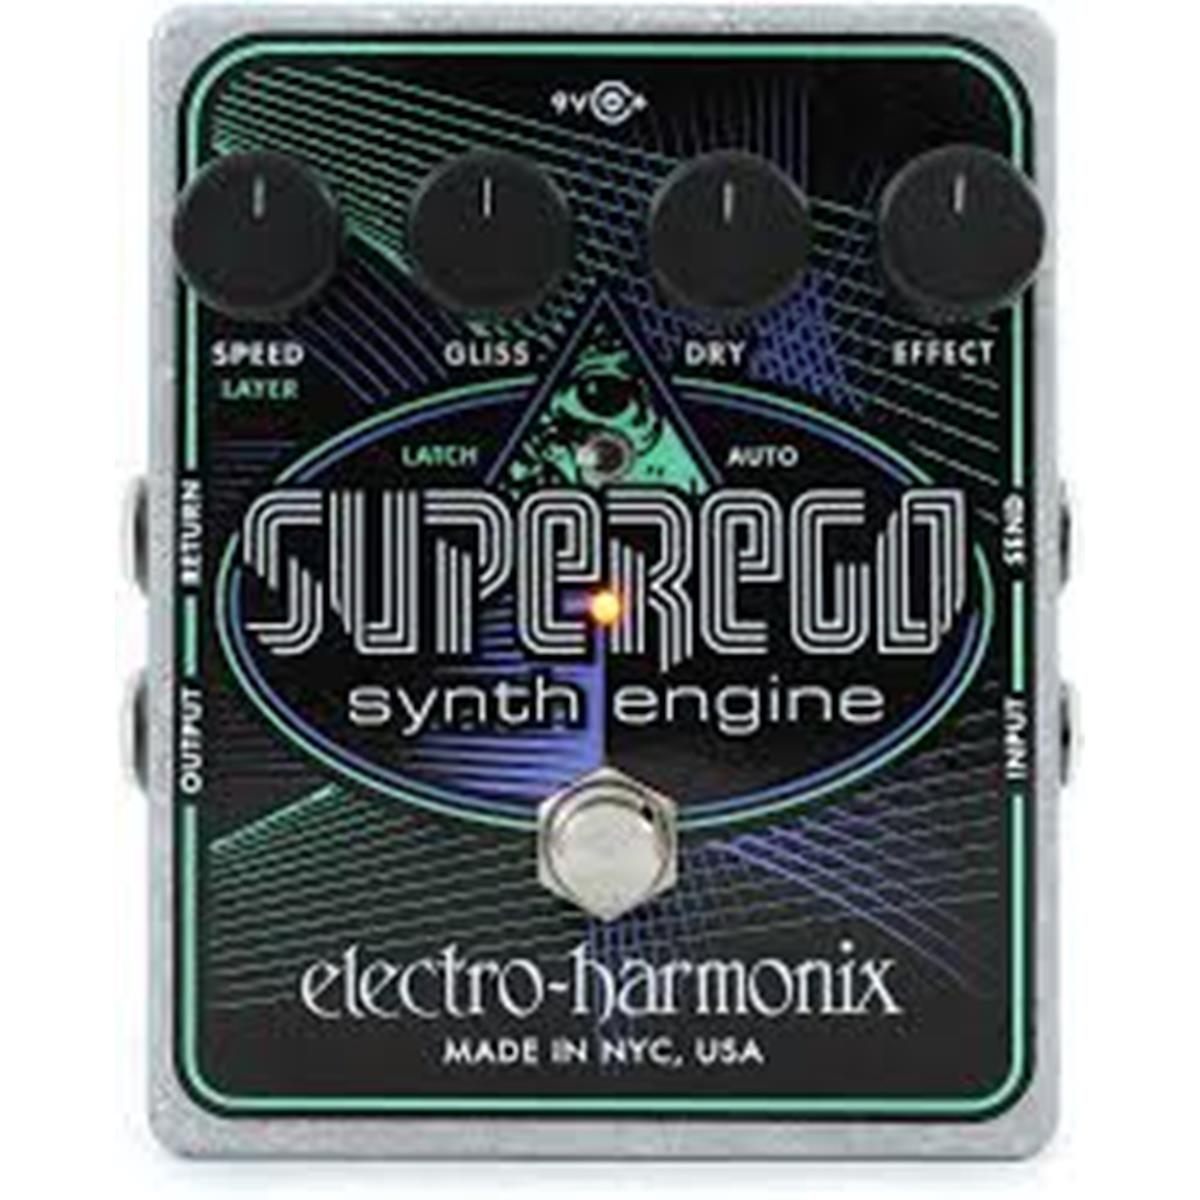 ELECTRO HARMONIX SUPEREGO  Synth engine from Moog to EMS  9.6DC-200 PSU included - Chitarre Effetti - Synth